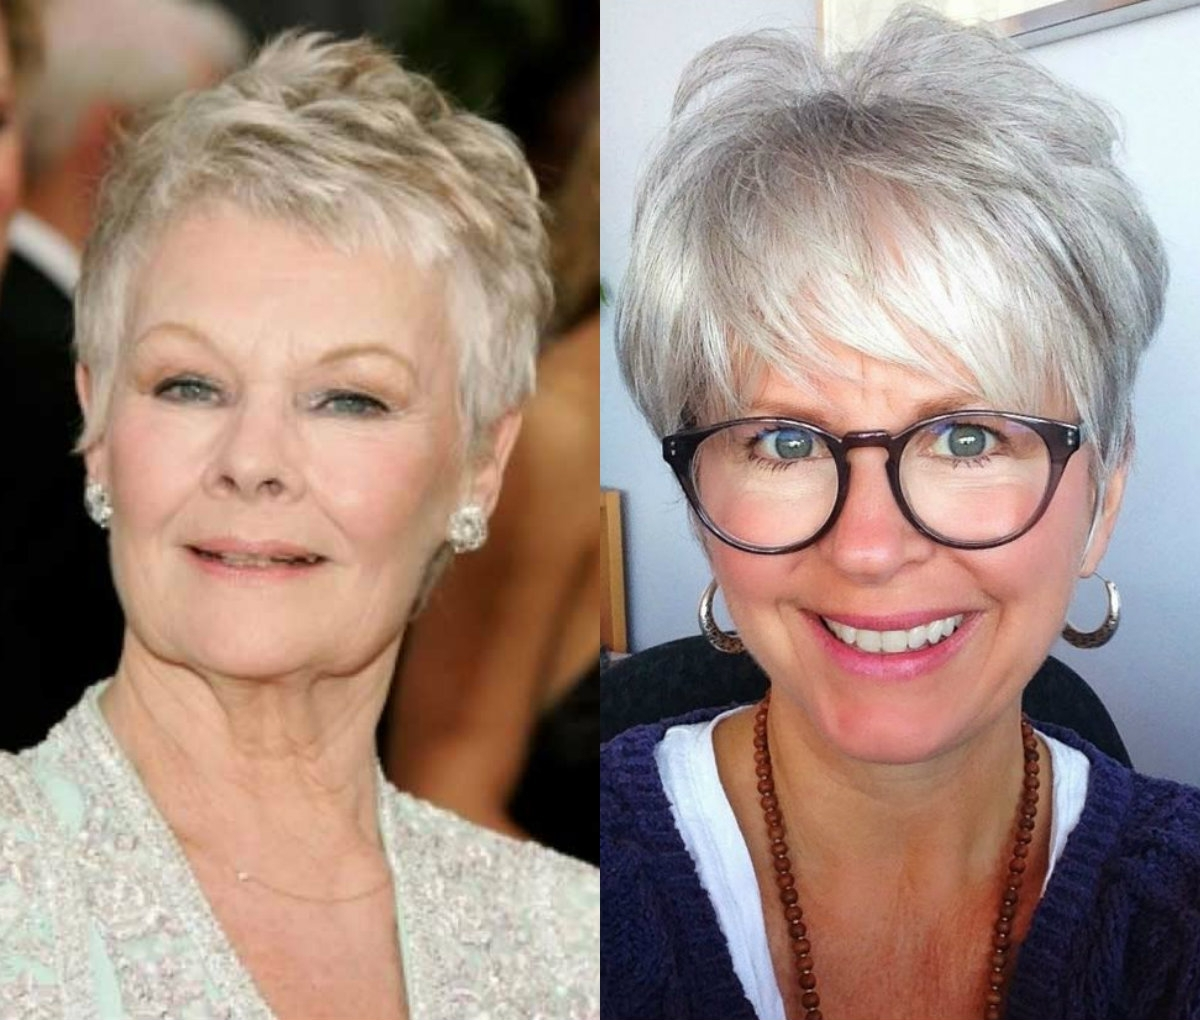 2017 Hairstyles For Older Women | Hairdrome With Regard To Most Up To Date Pixie Hairstyles For Older Ladies (View 11 of 15)